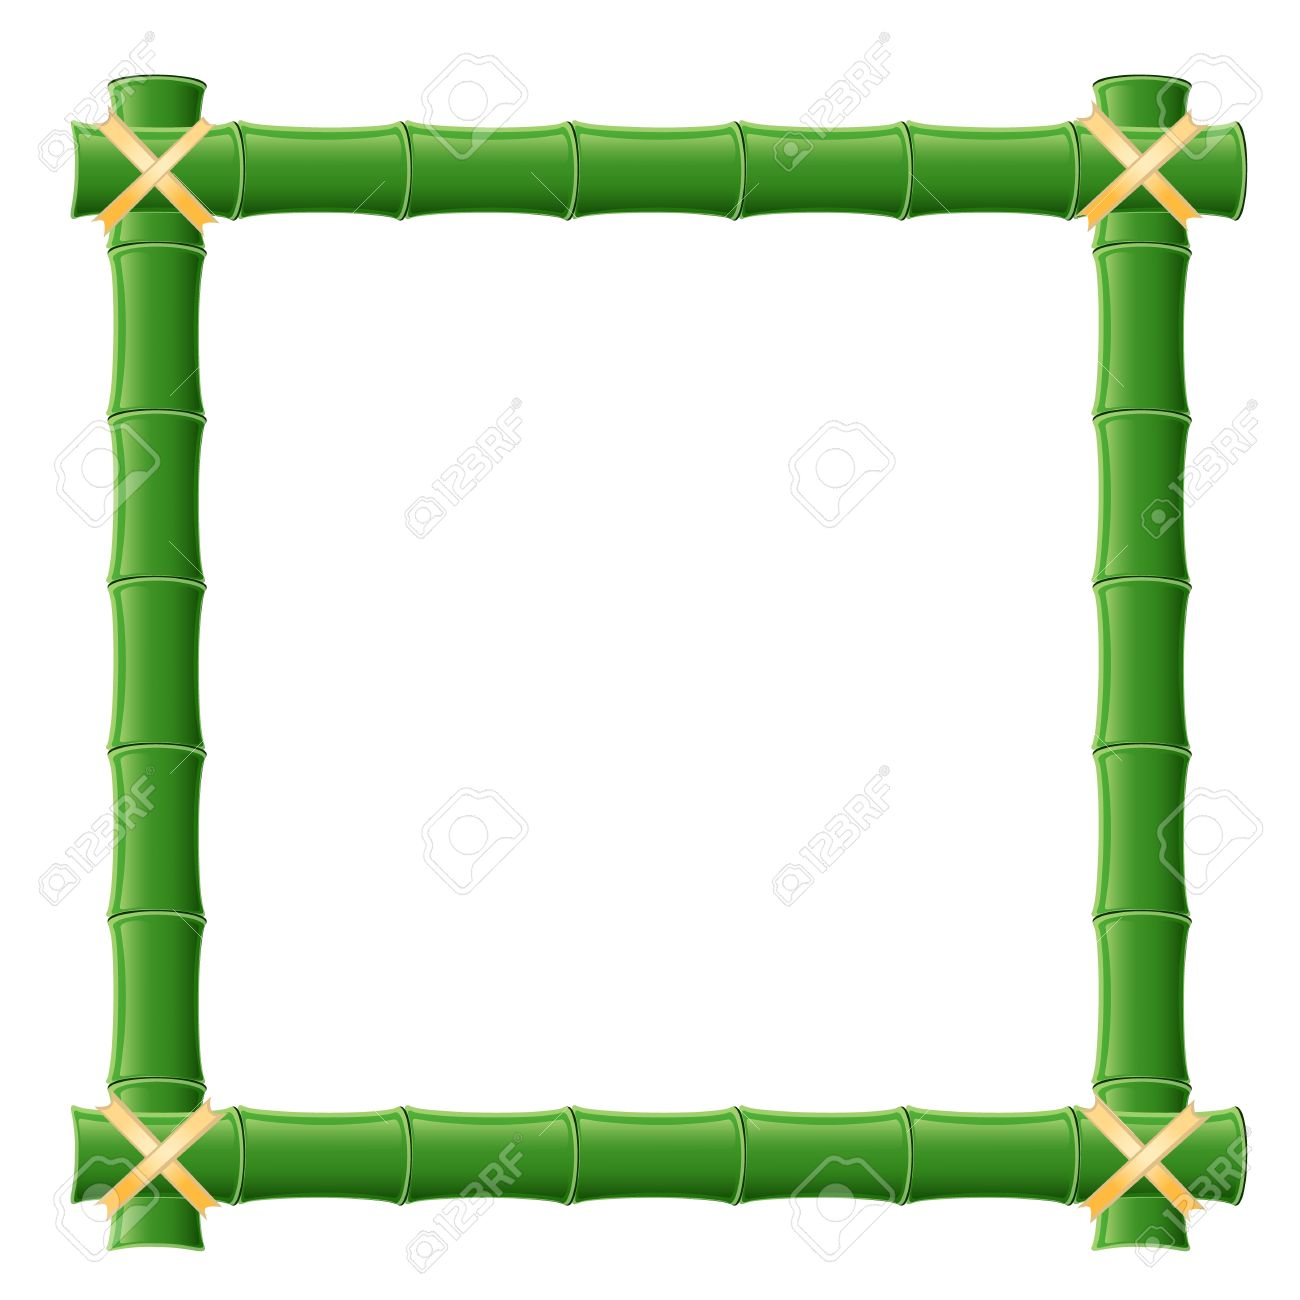 Bamboo frame clipart clipground